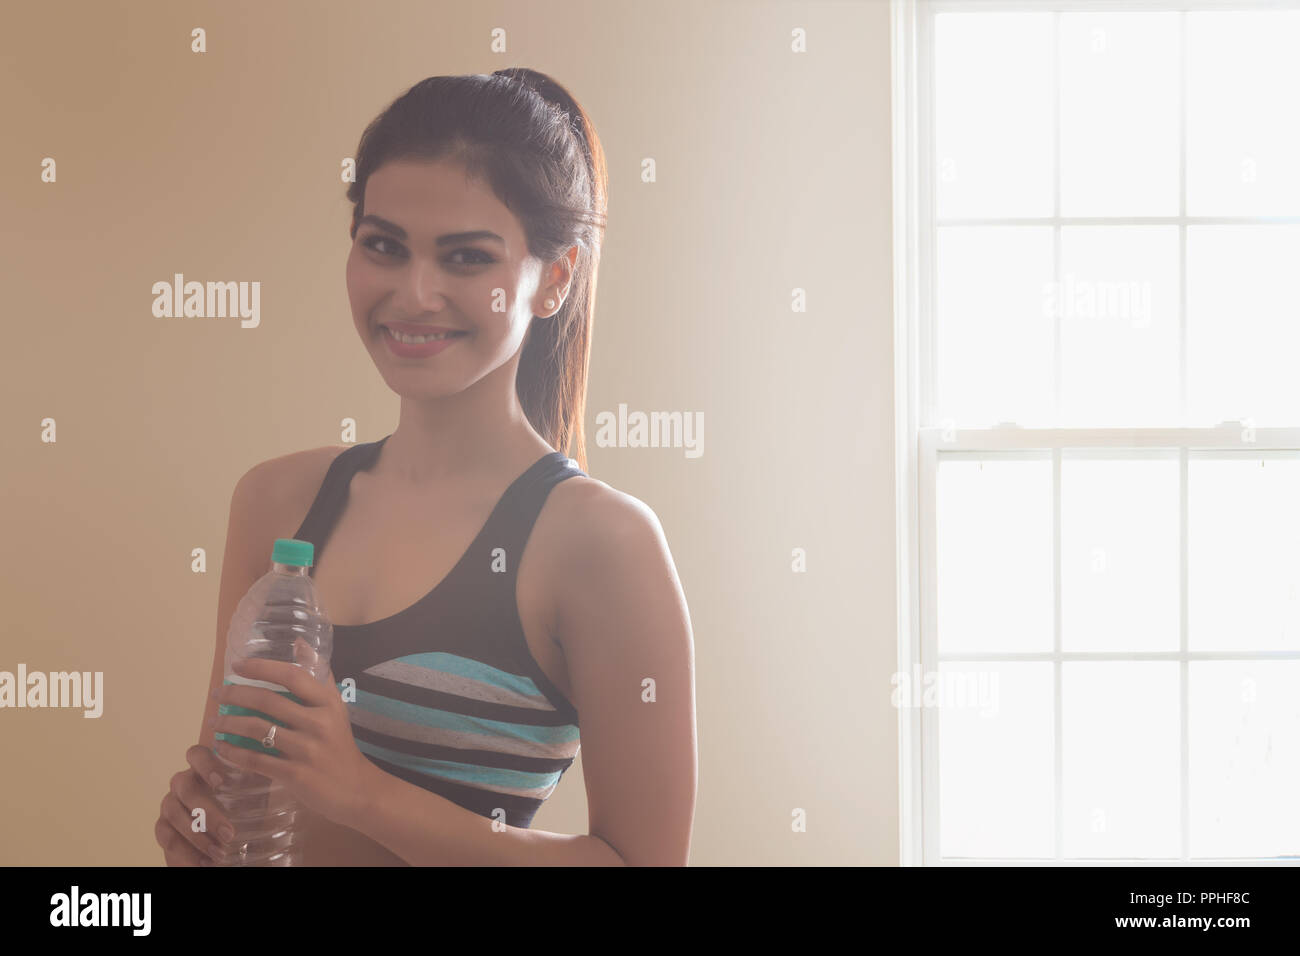 Portrait of a smiling young woman in workout clothes holding water bottle after workout. - Stock Image